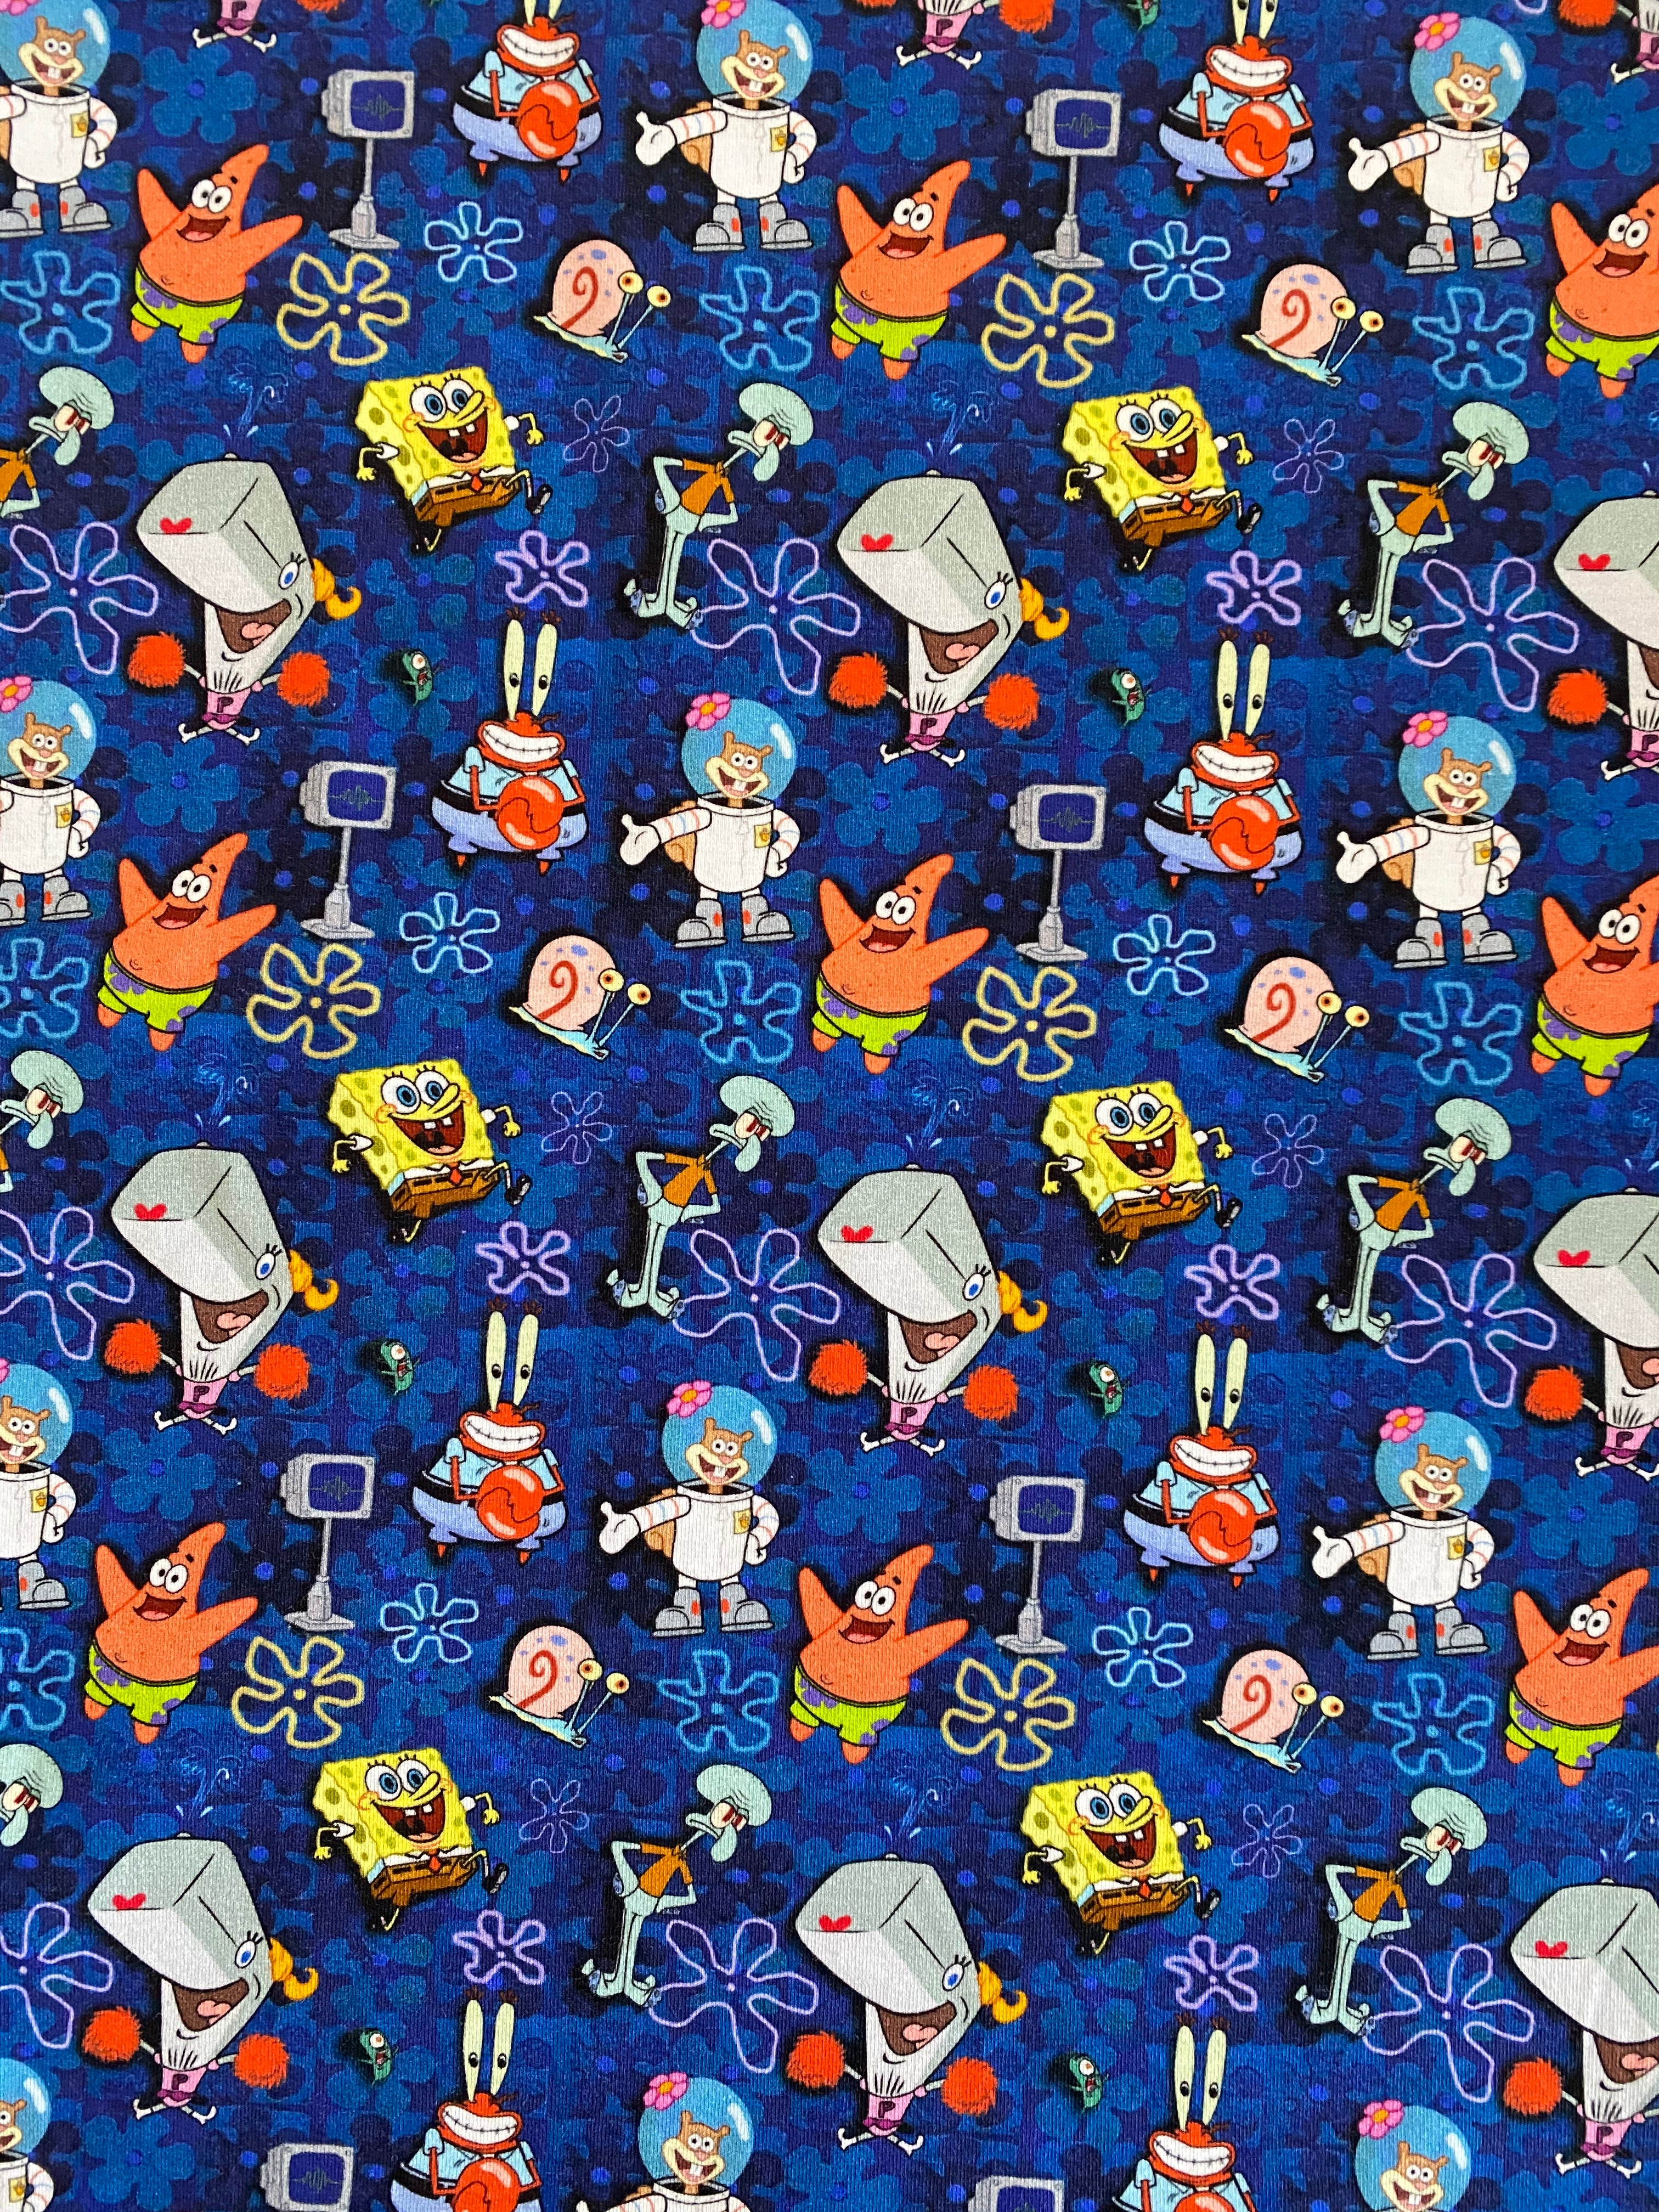 Spongebob Fabric - Personalise Me